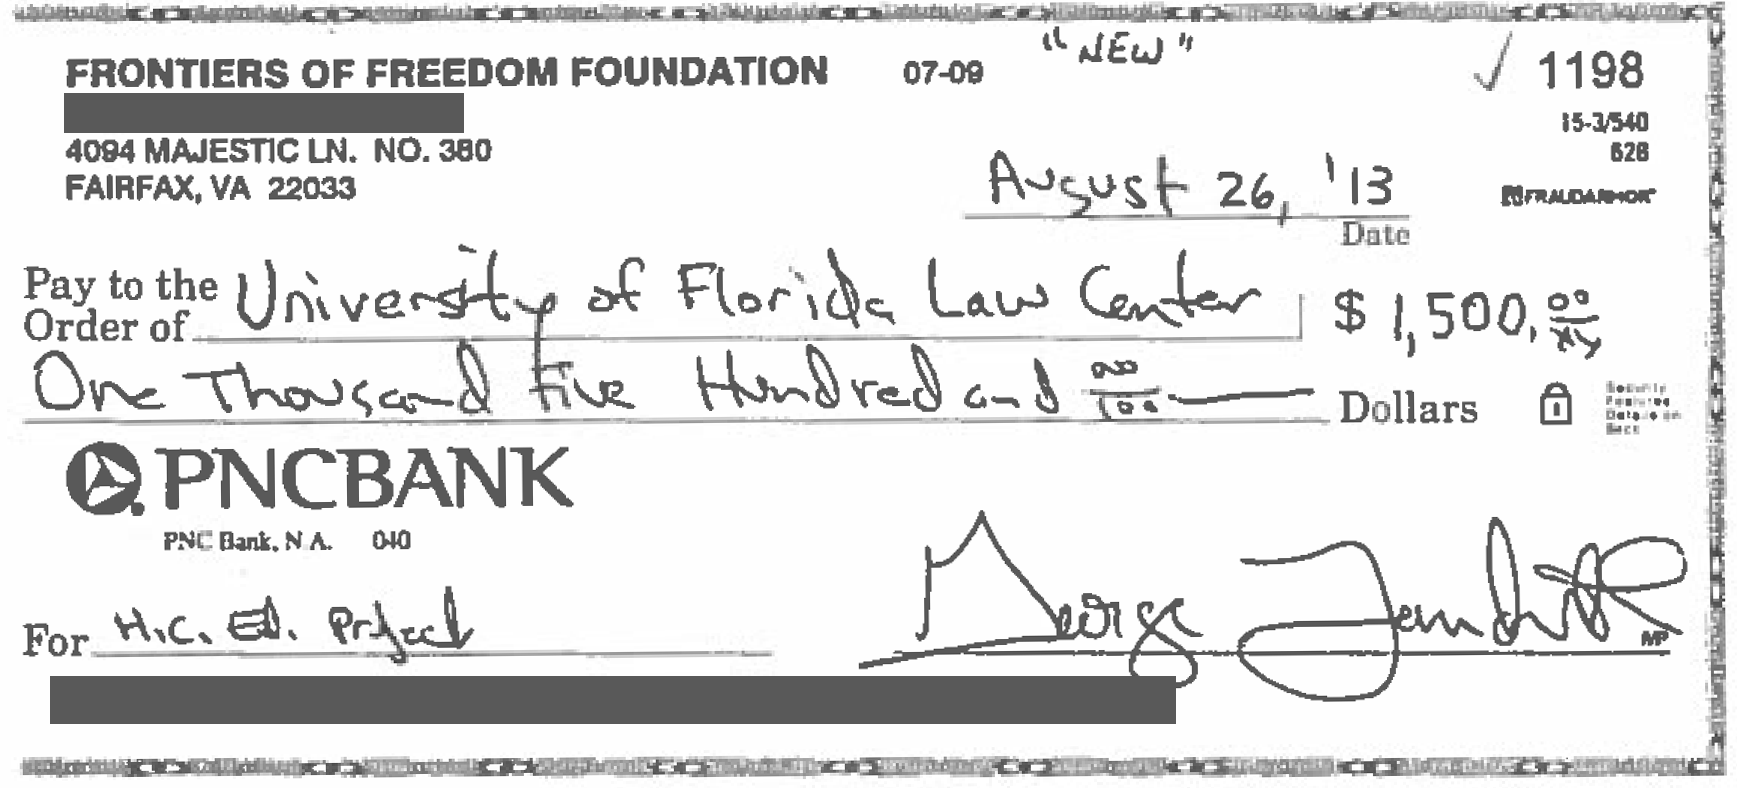 Image of check for $1,500 to the University of Florida Law Center from the Frontiers of Freedom Foundation